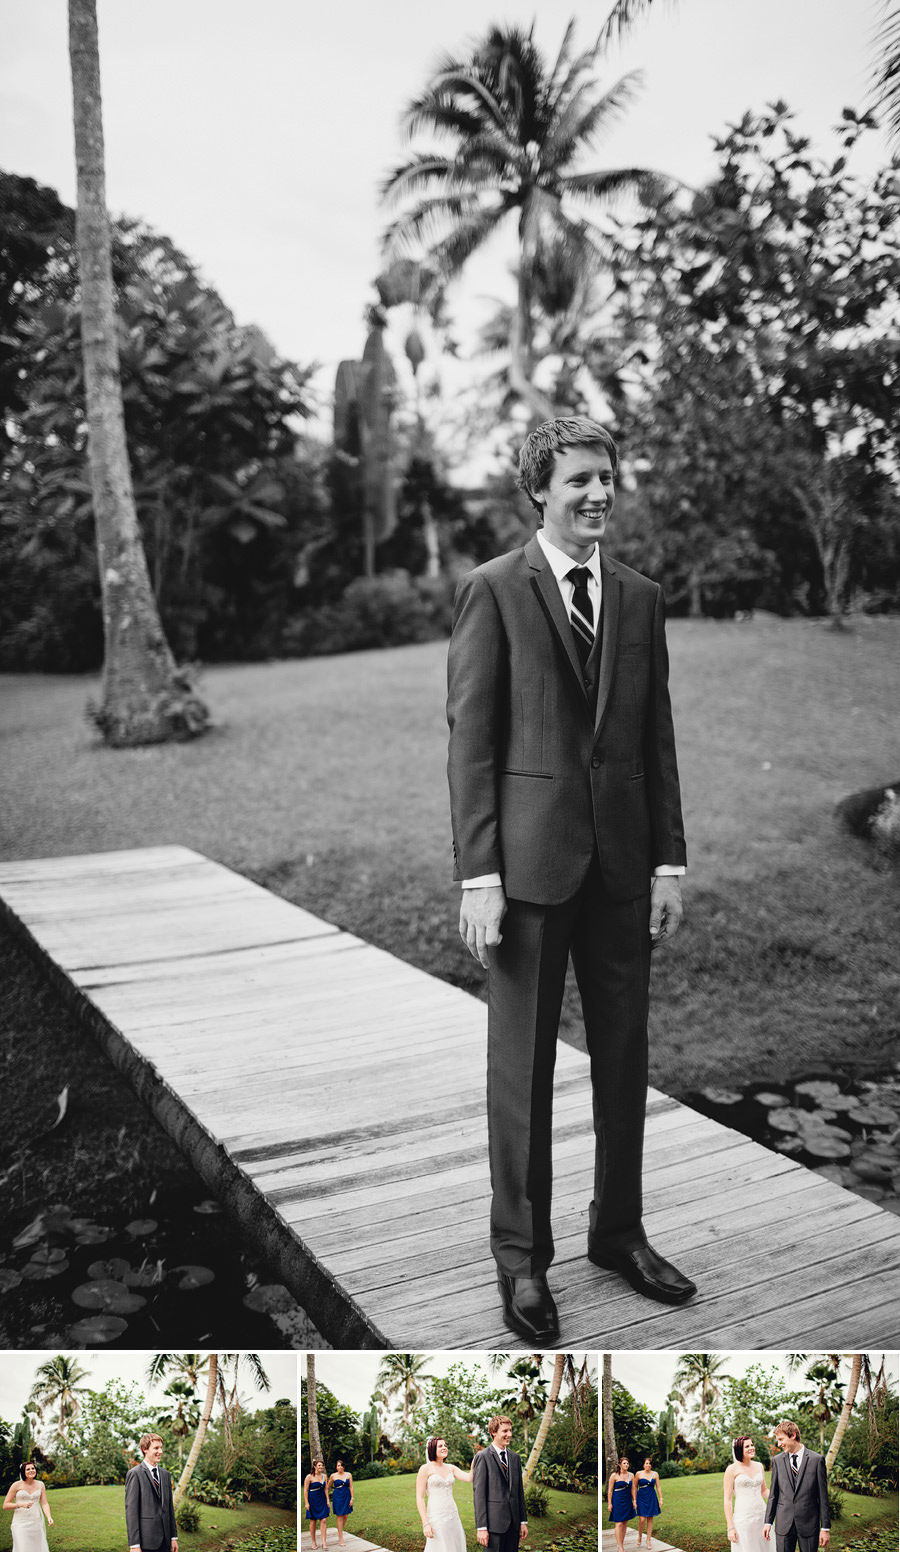 South Pacific Wedding Photography: Groom waiting at first look